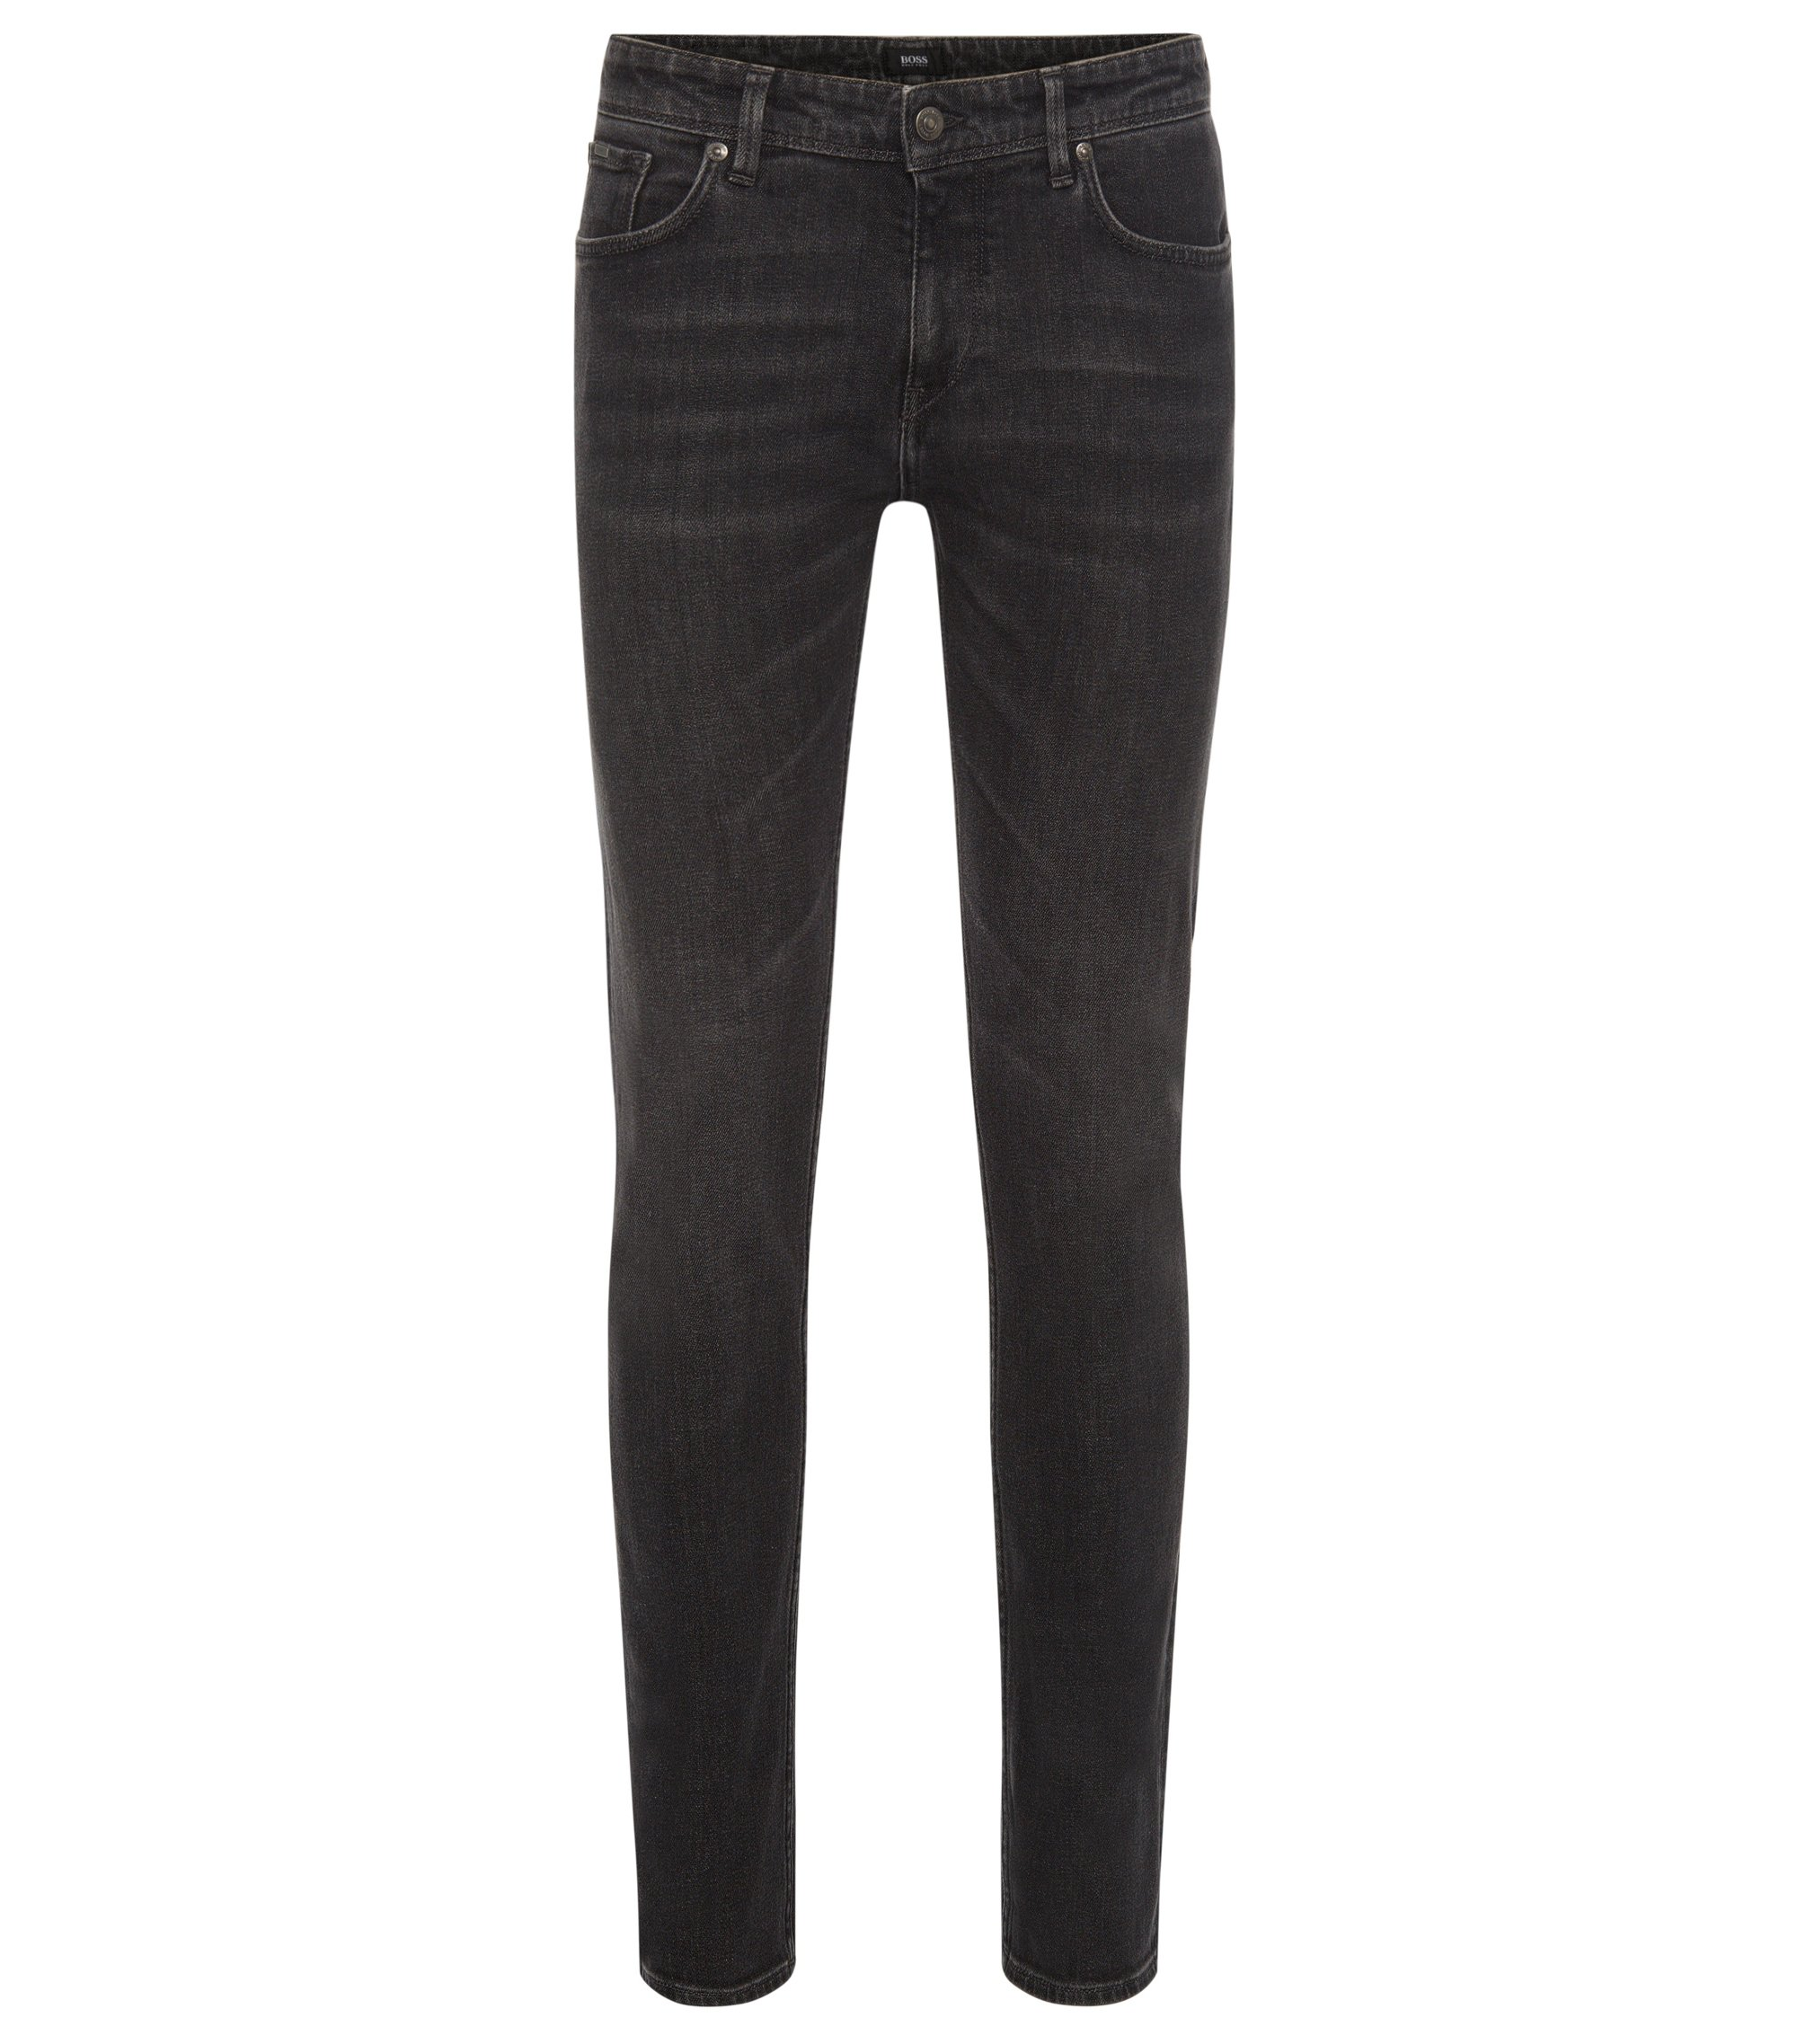 Stretch Cotton Jean, Slim Fit | Charleston, Charcoal